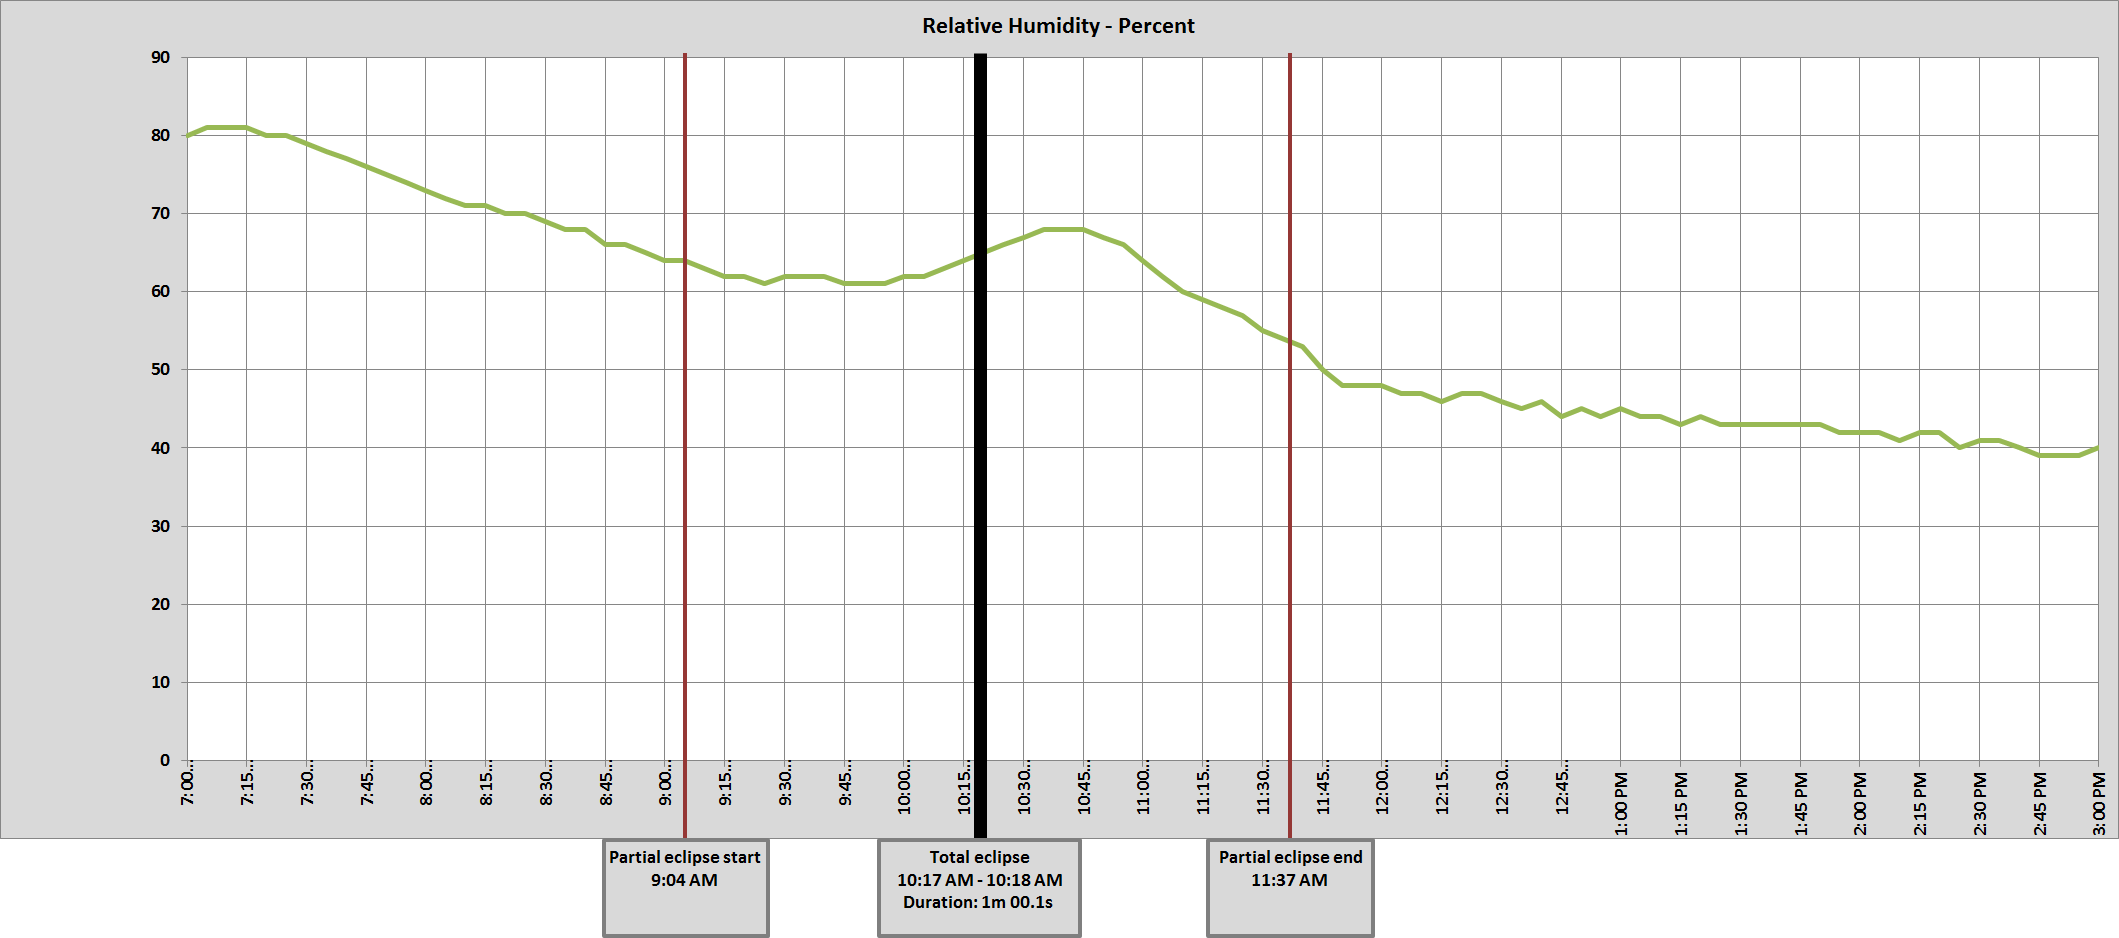 Graph of Corvallis, OR relative humidity